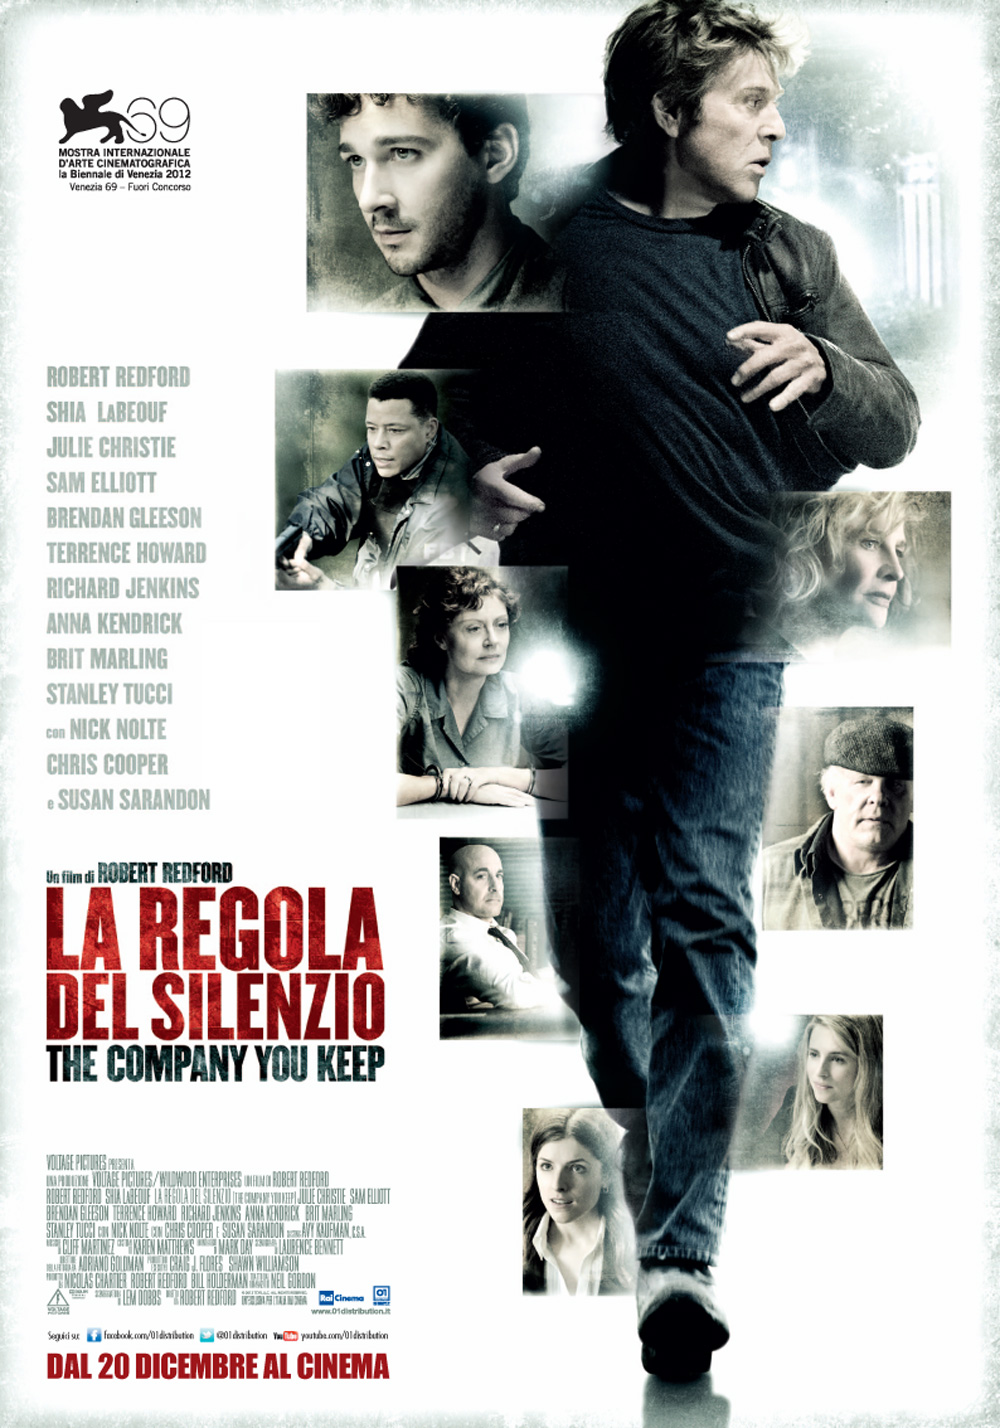 la regola del silenzio - the company you keep (2012) - mymovies.it